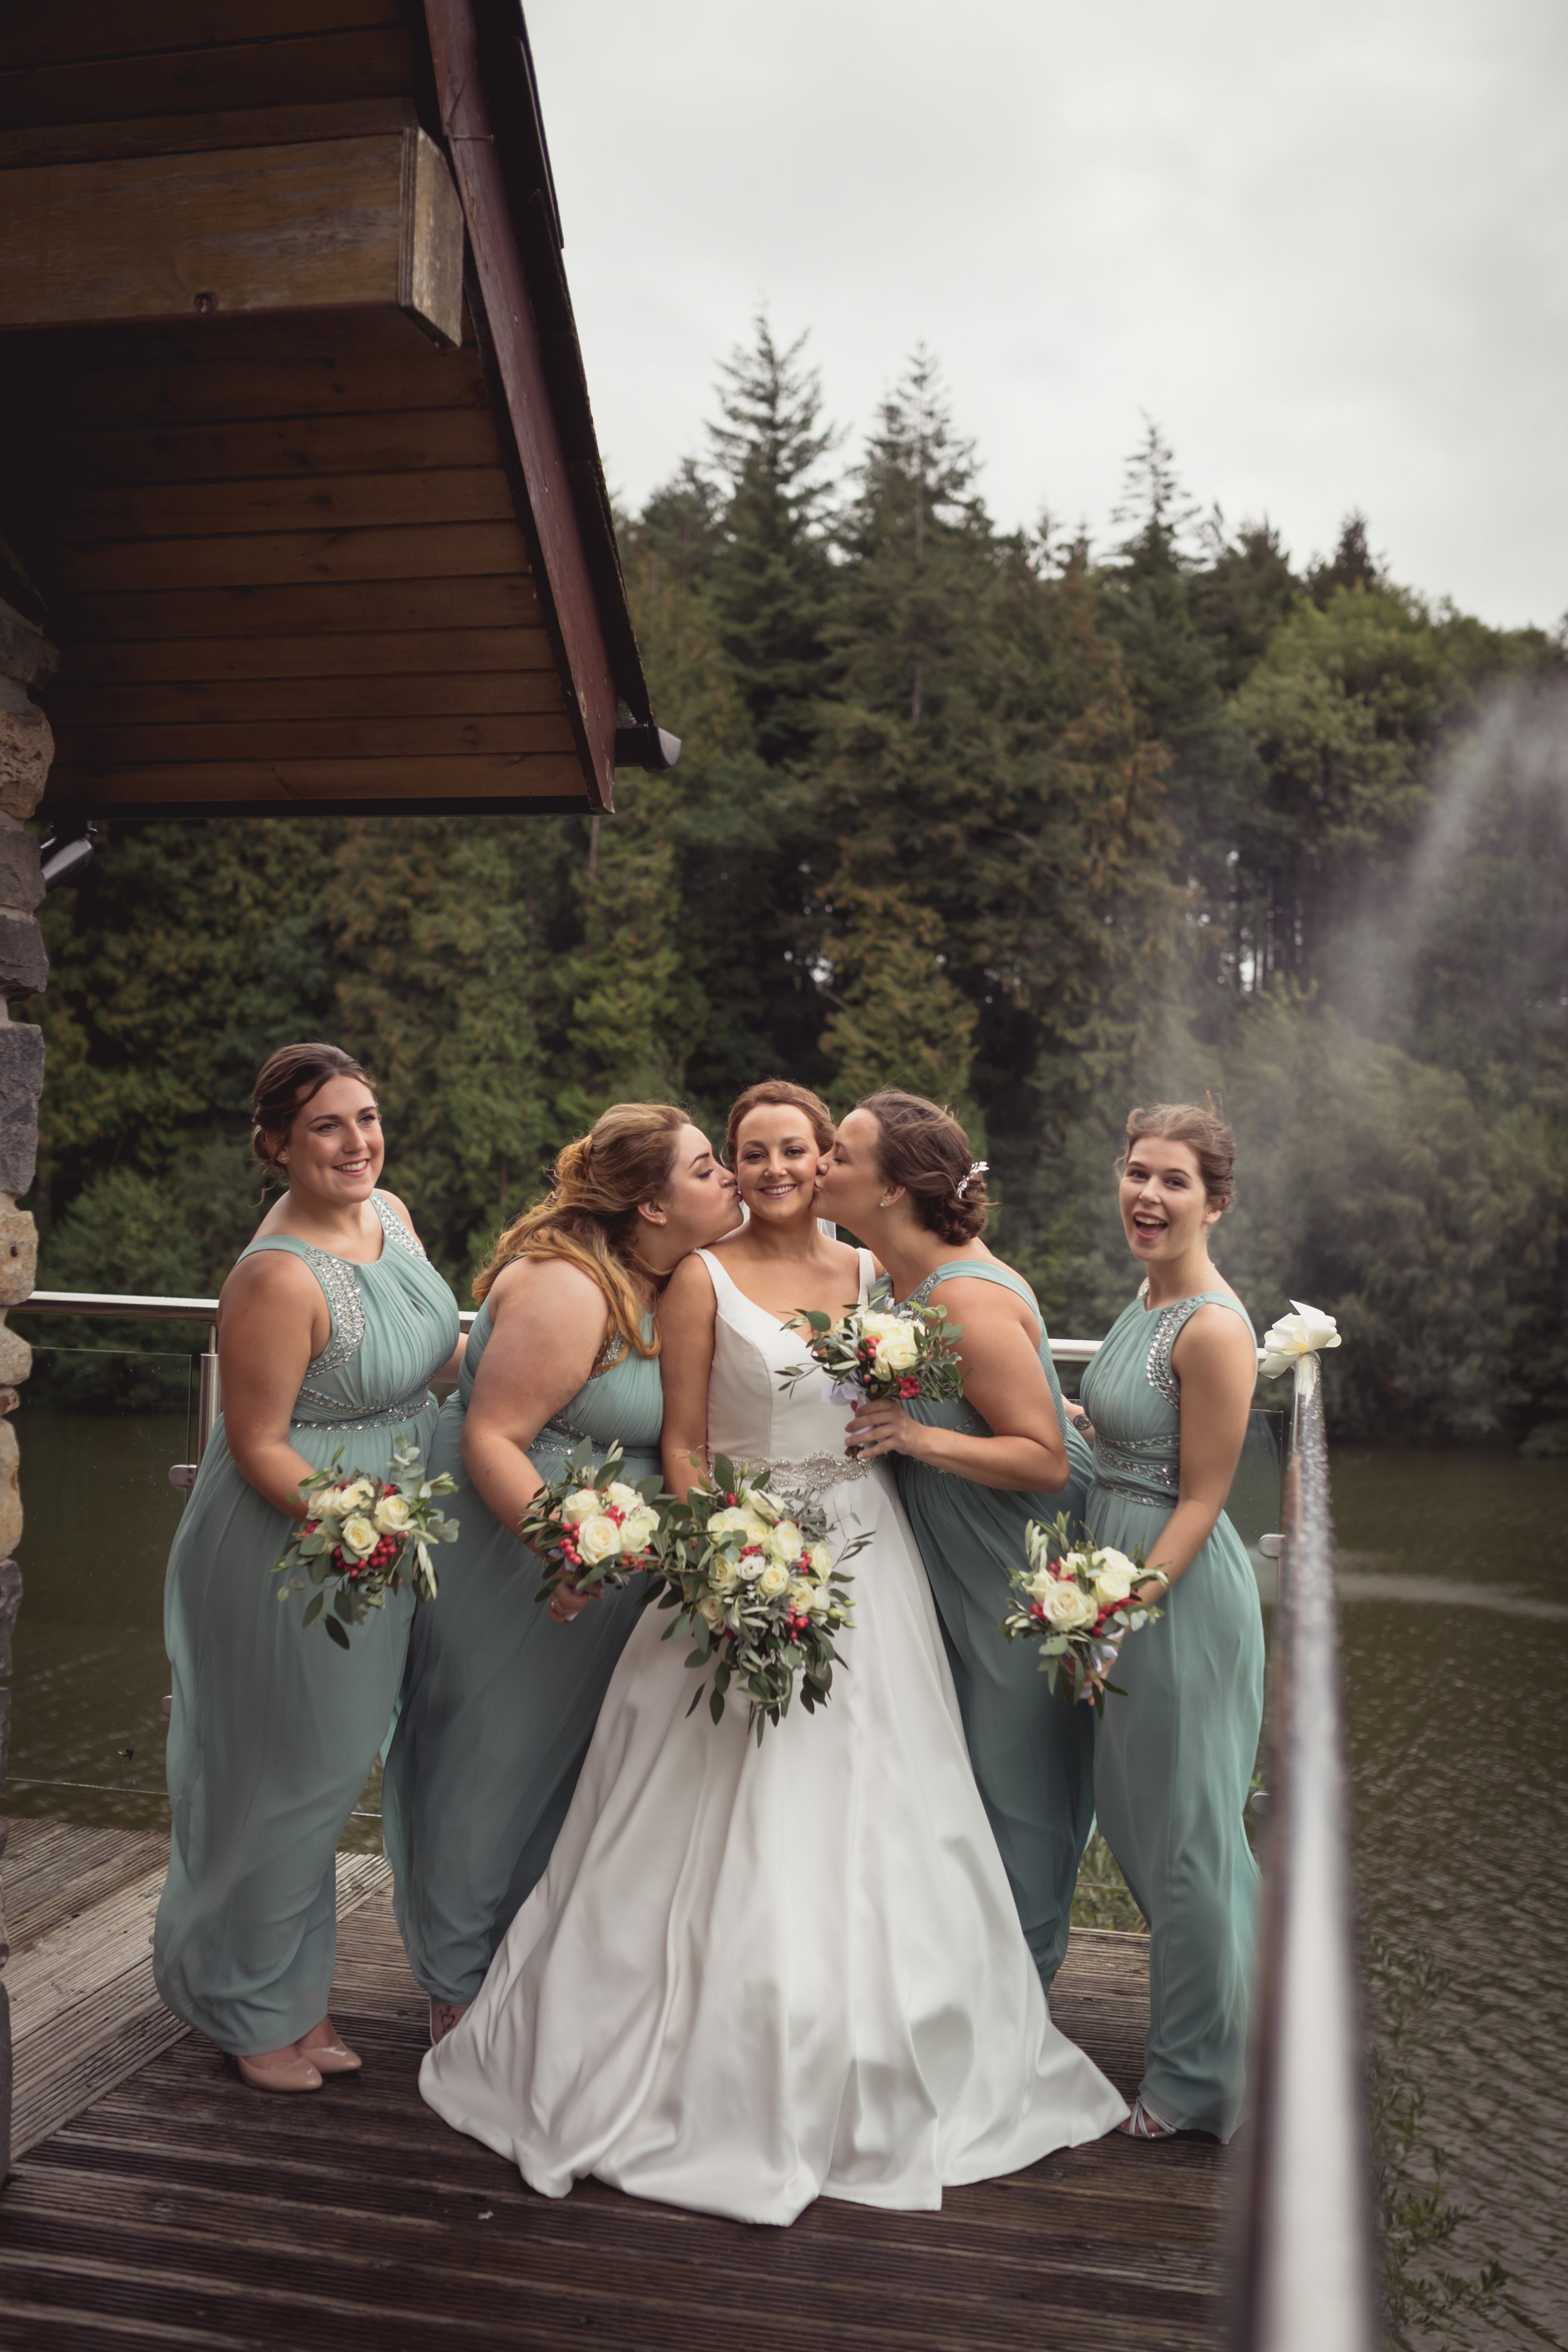 Photograph at Canada Lodge of a bride with her four bridesmaids next to her